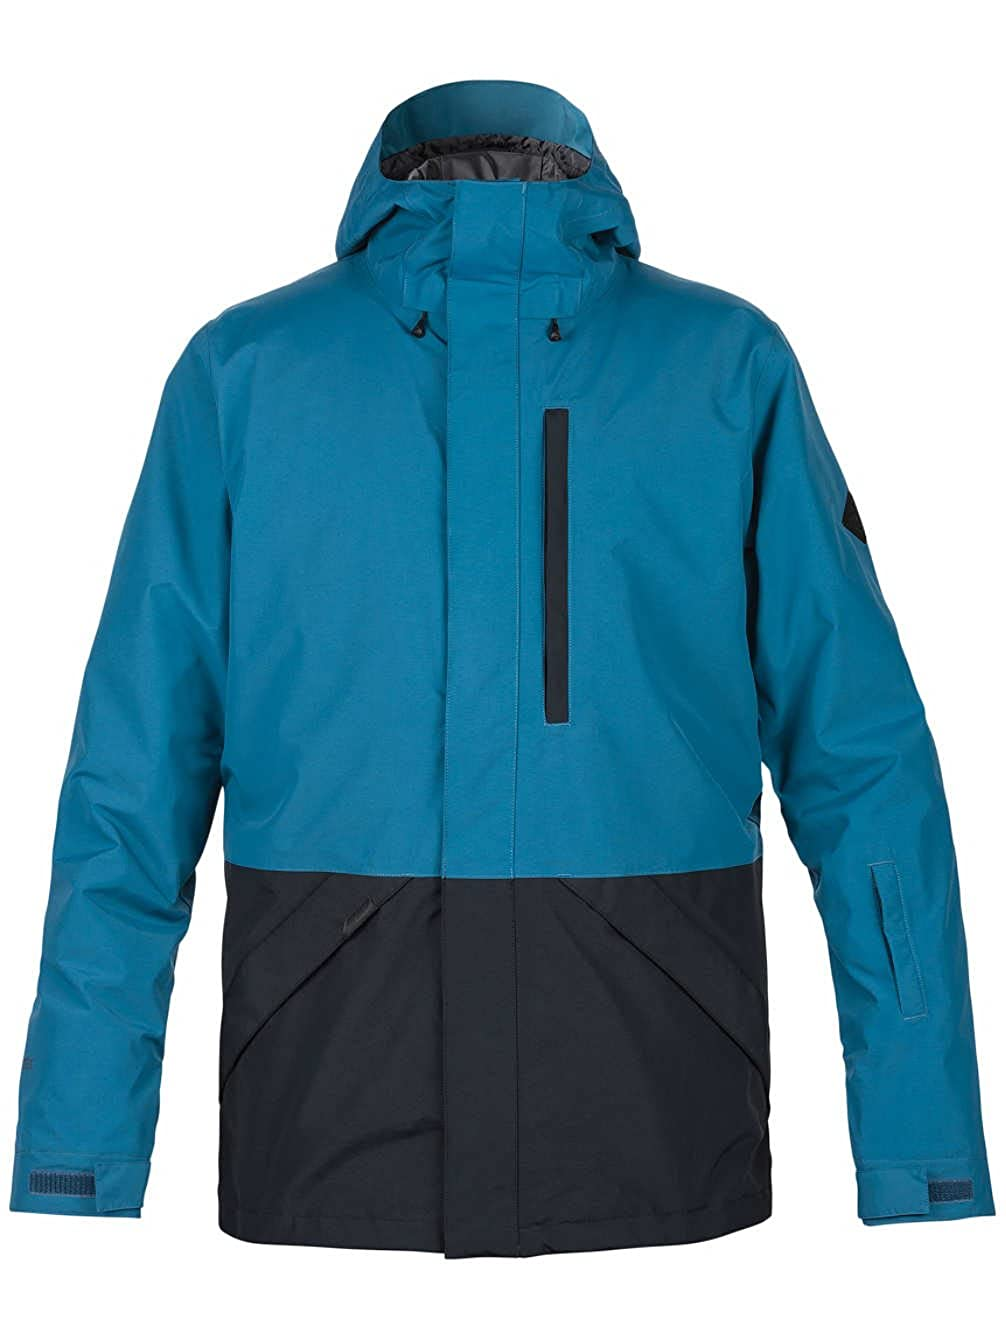 Dakine OUTERWEAR メンズ B01CAU70ZK Large|Chill Blue/ Black Chill Blue/ Black Large